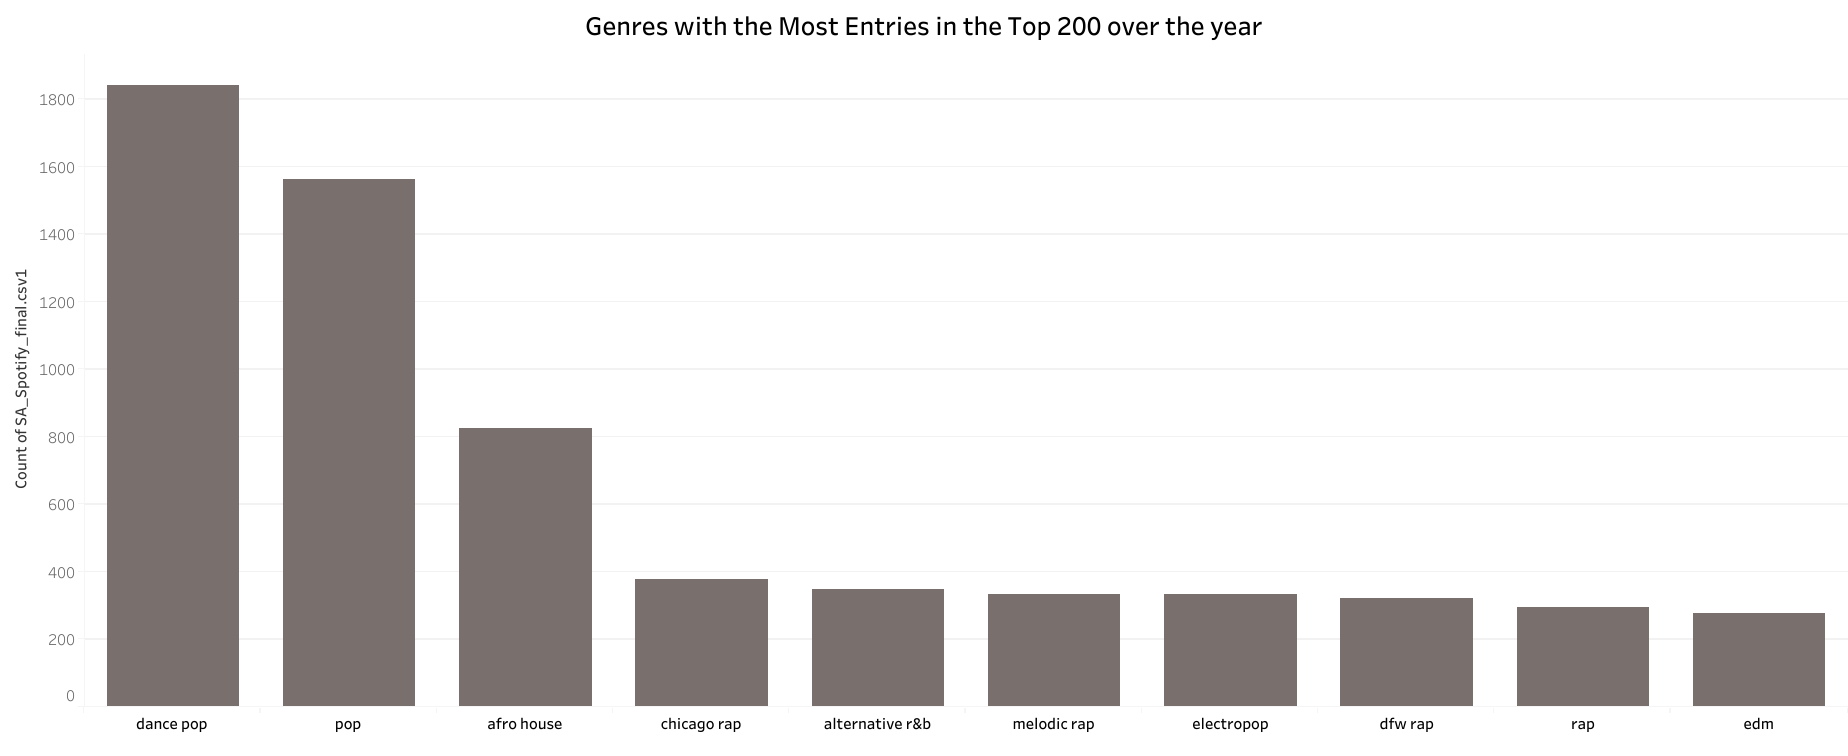 Genres with the most entries